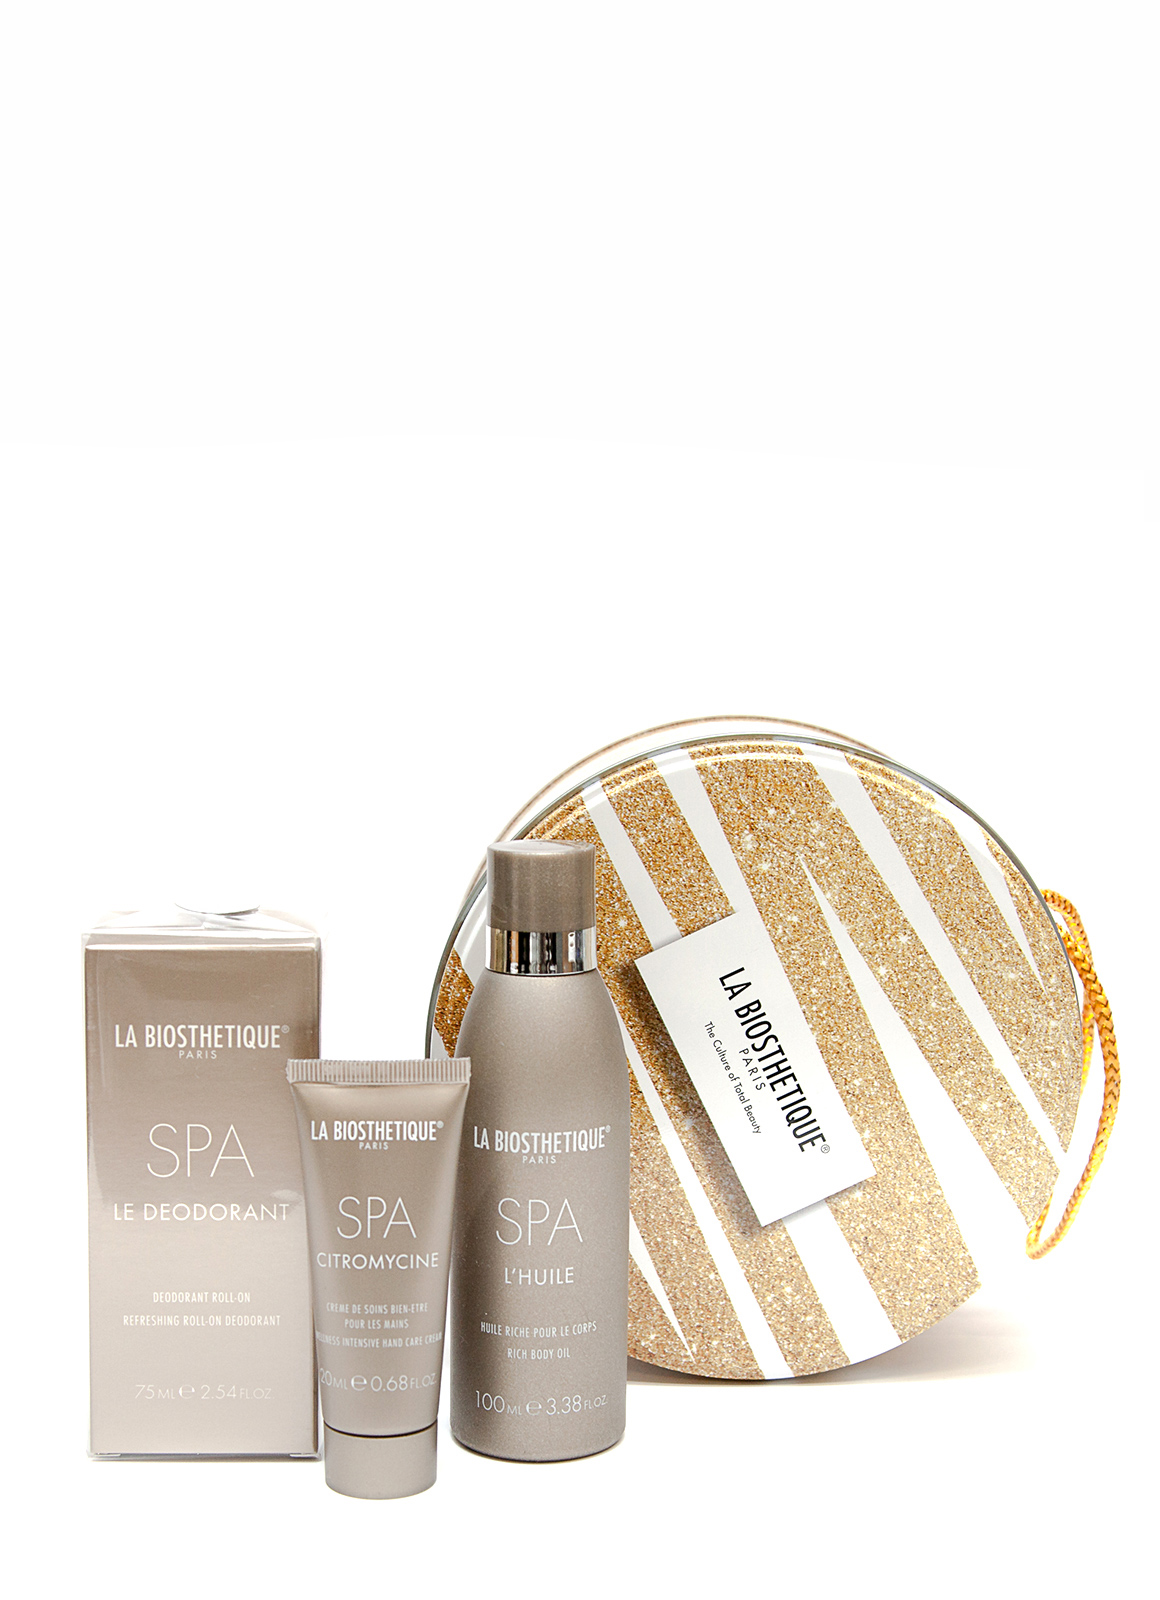 SPA -сет для ухода за телом Spa Beauty Set La Biosthetique